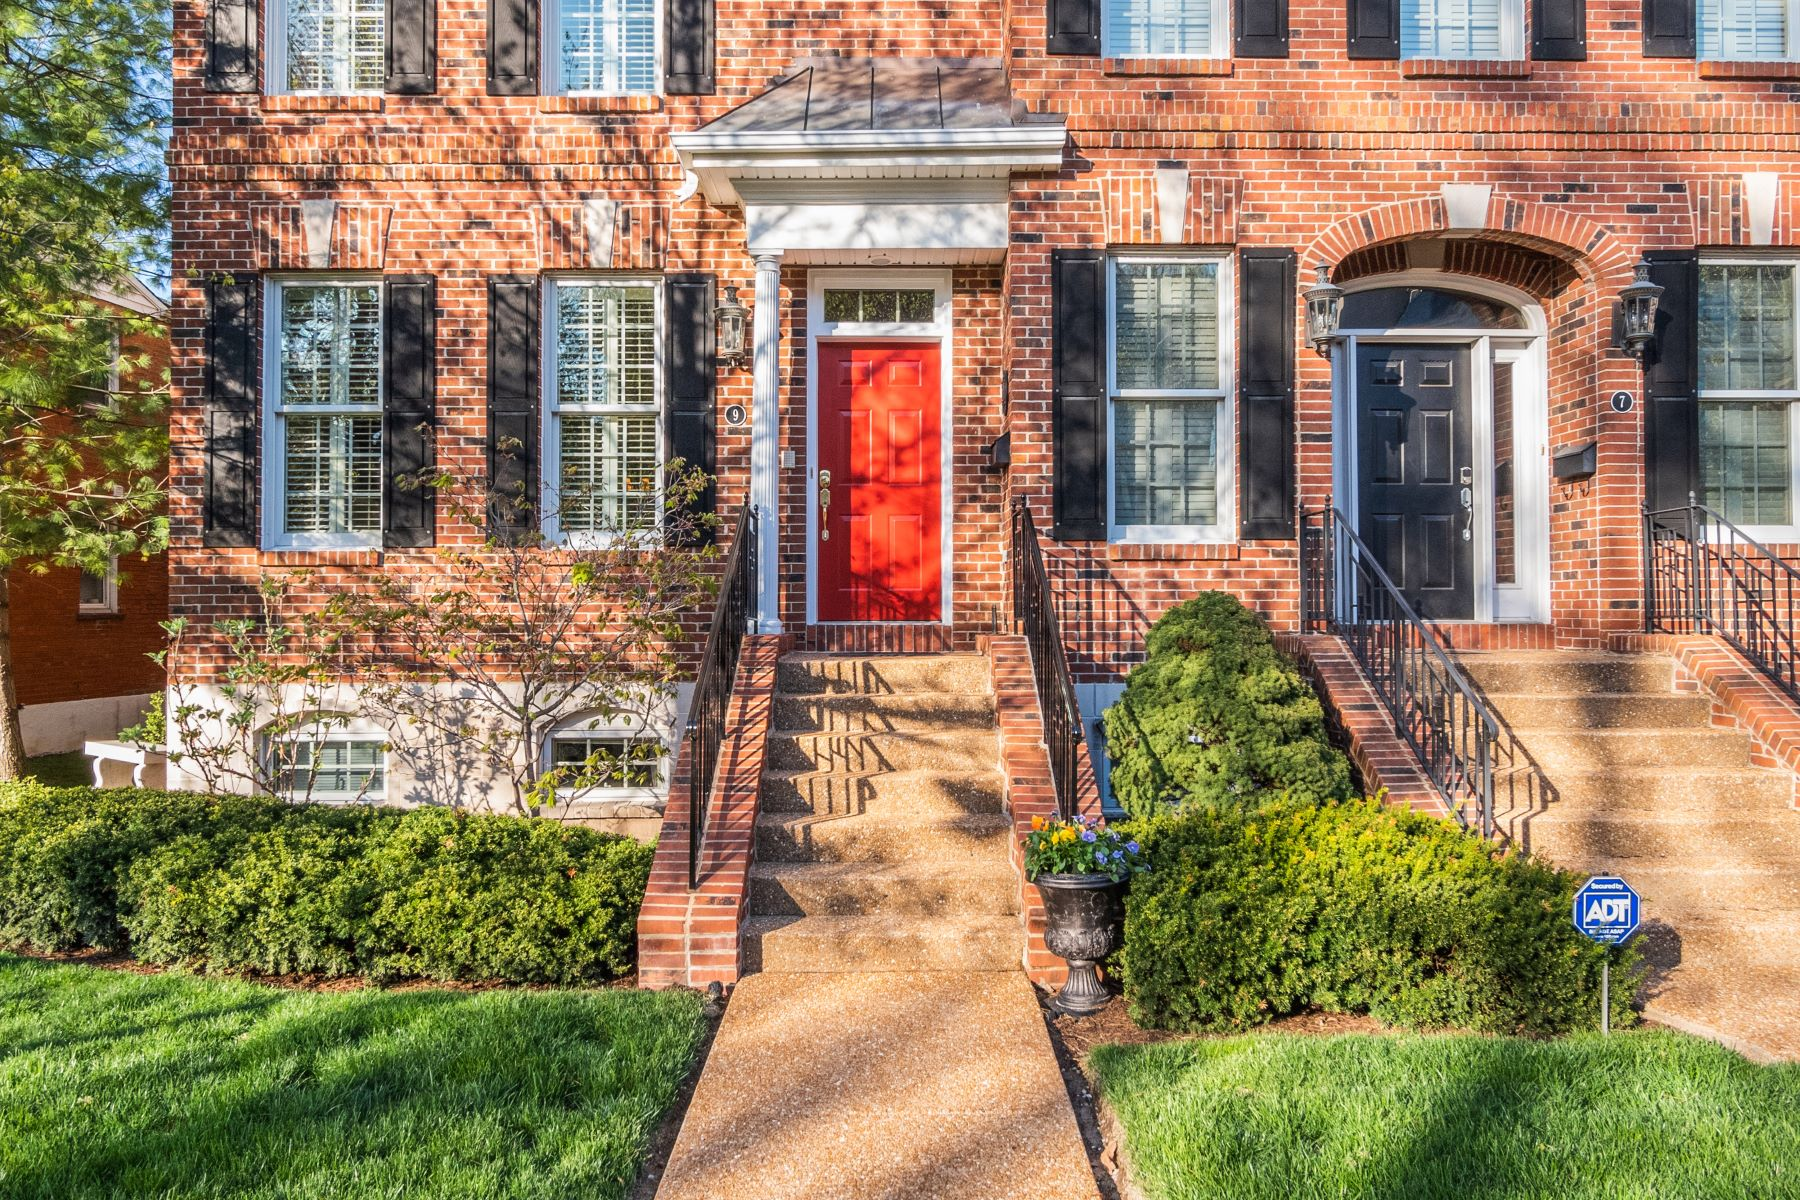 Condominium for Sale at Townhome Living In the Heart of Clayton 9 Brighton Way Clayton, Missouri 63105 United States